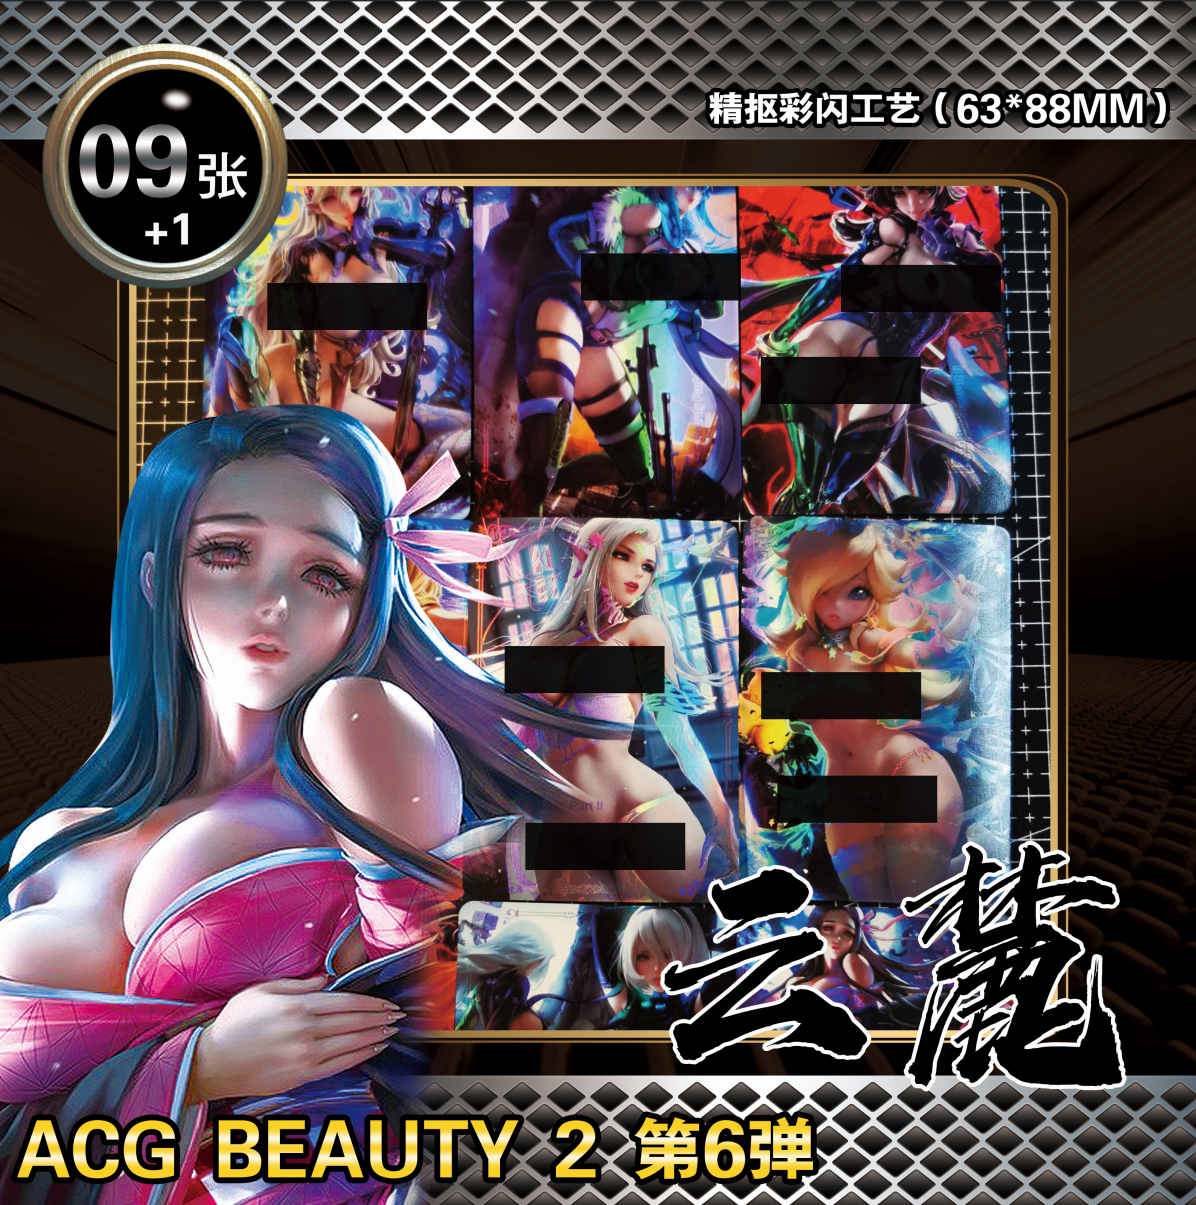 ACG BEAUTY 2 Sexy Girls Toys Sixth Bomb Hobbies Hobby Collectibles Game Collection Anime Cards